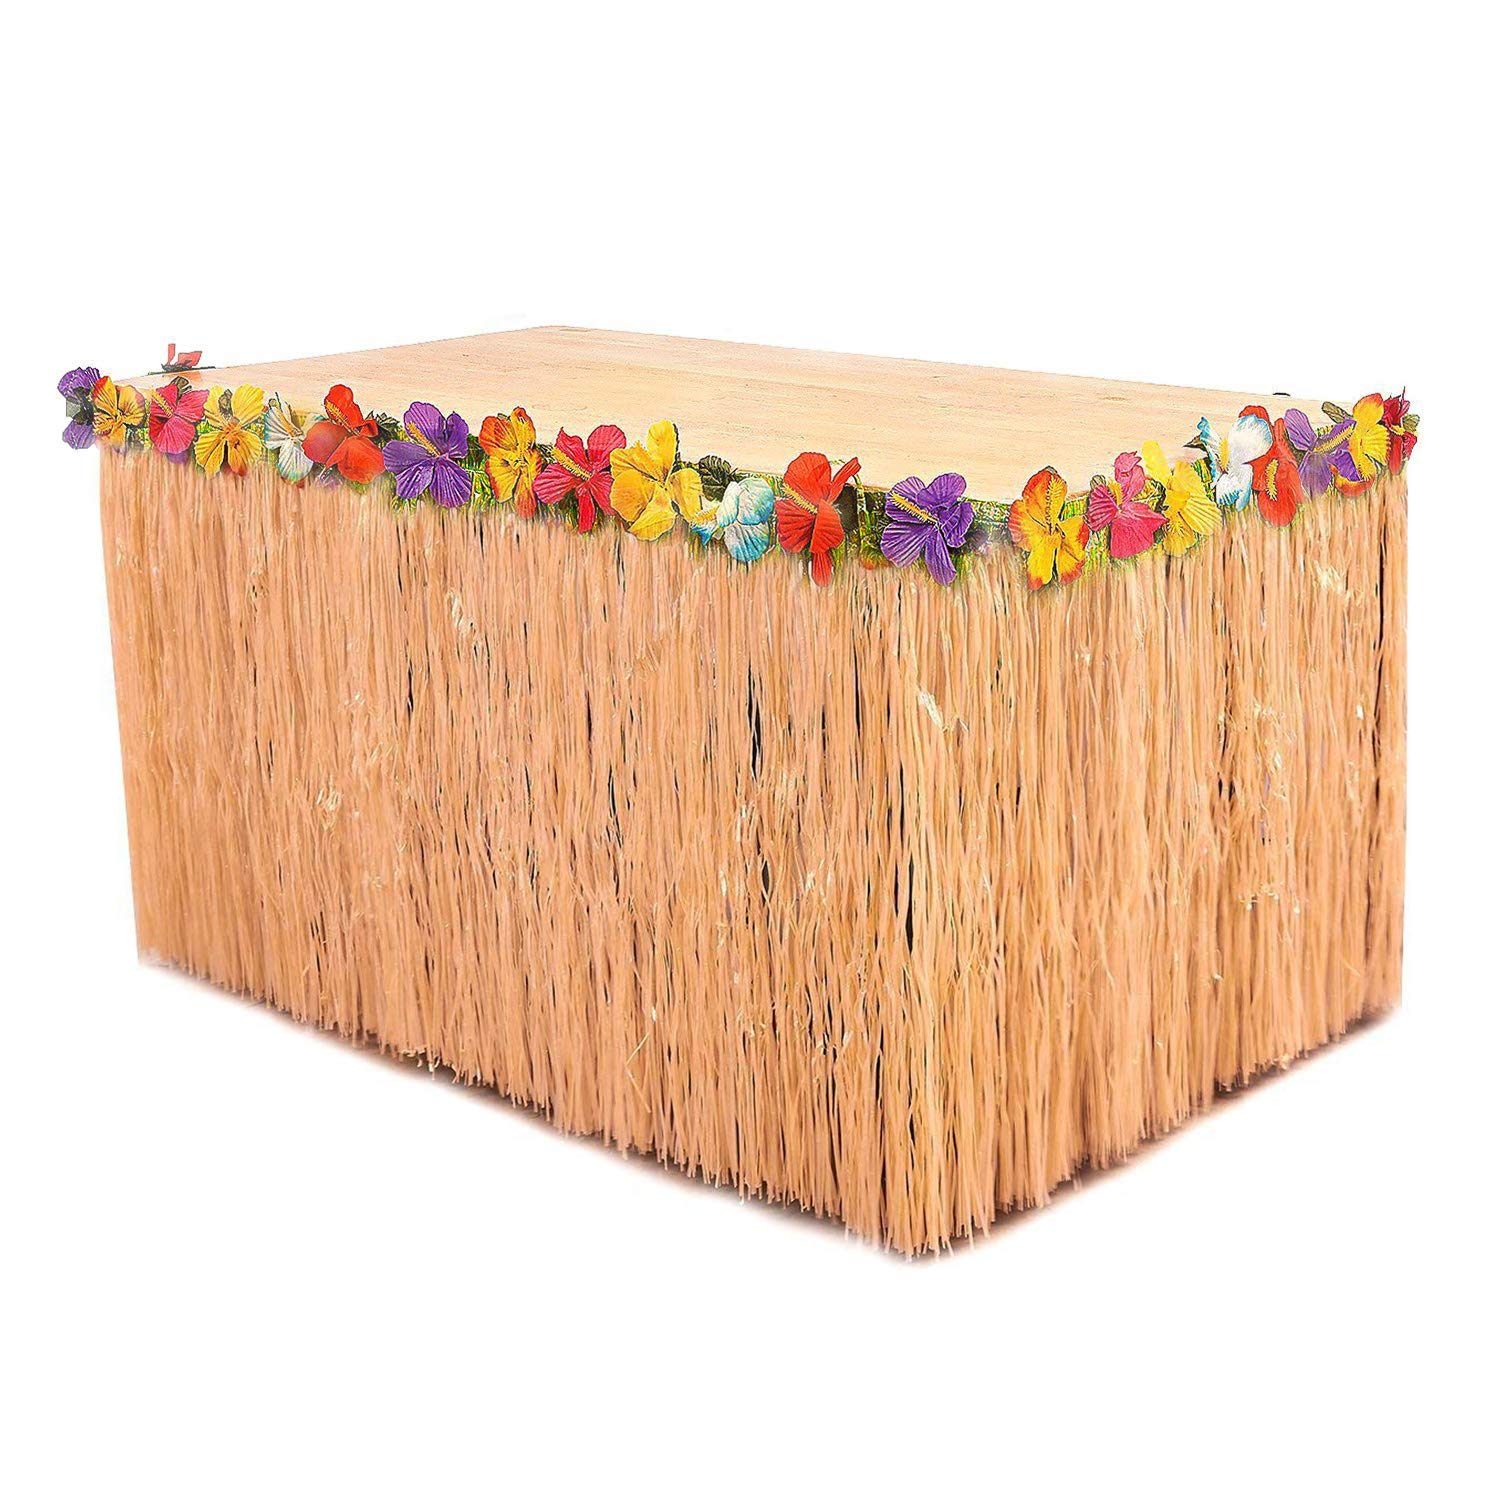 YAYALE Hawaiian Luau 1pc String Grass Table Skirt + 12pcs Tropical Faux Palm Leaves + 24pcs Hibiscus Flowers for Tabletop Decoration Jungle/Beach Party Supplies (Yellow)